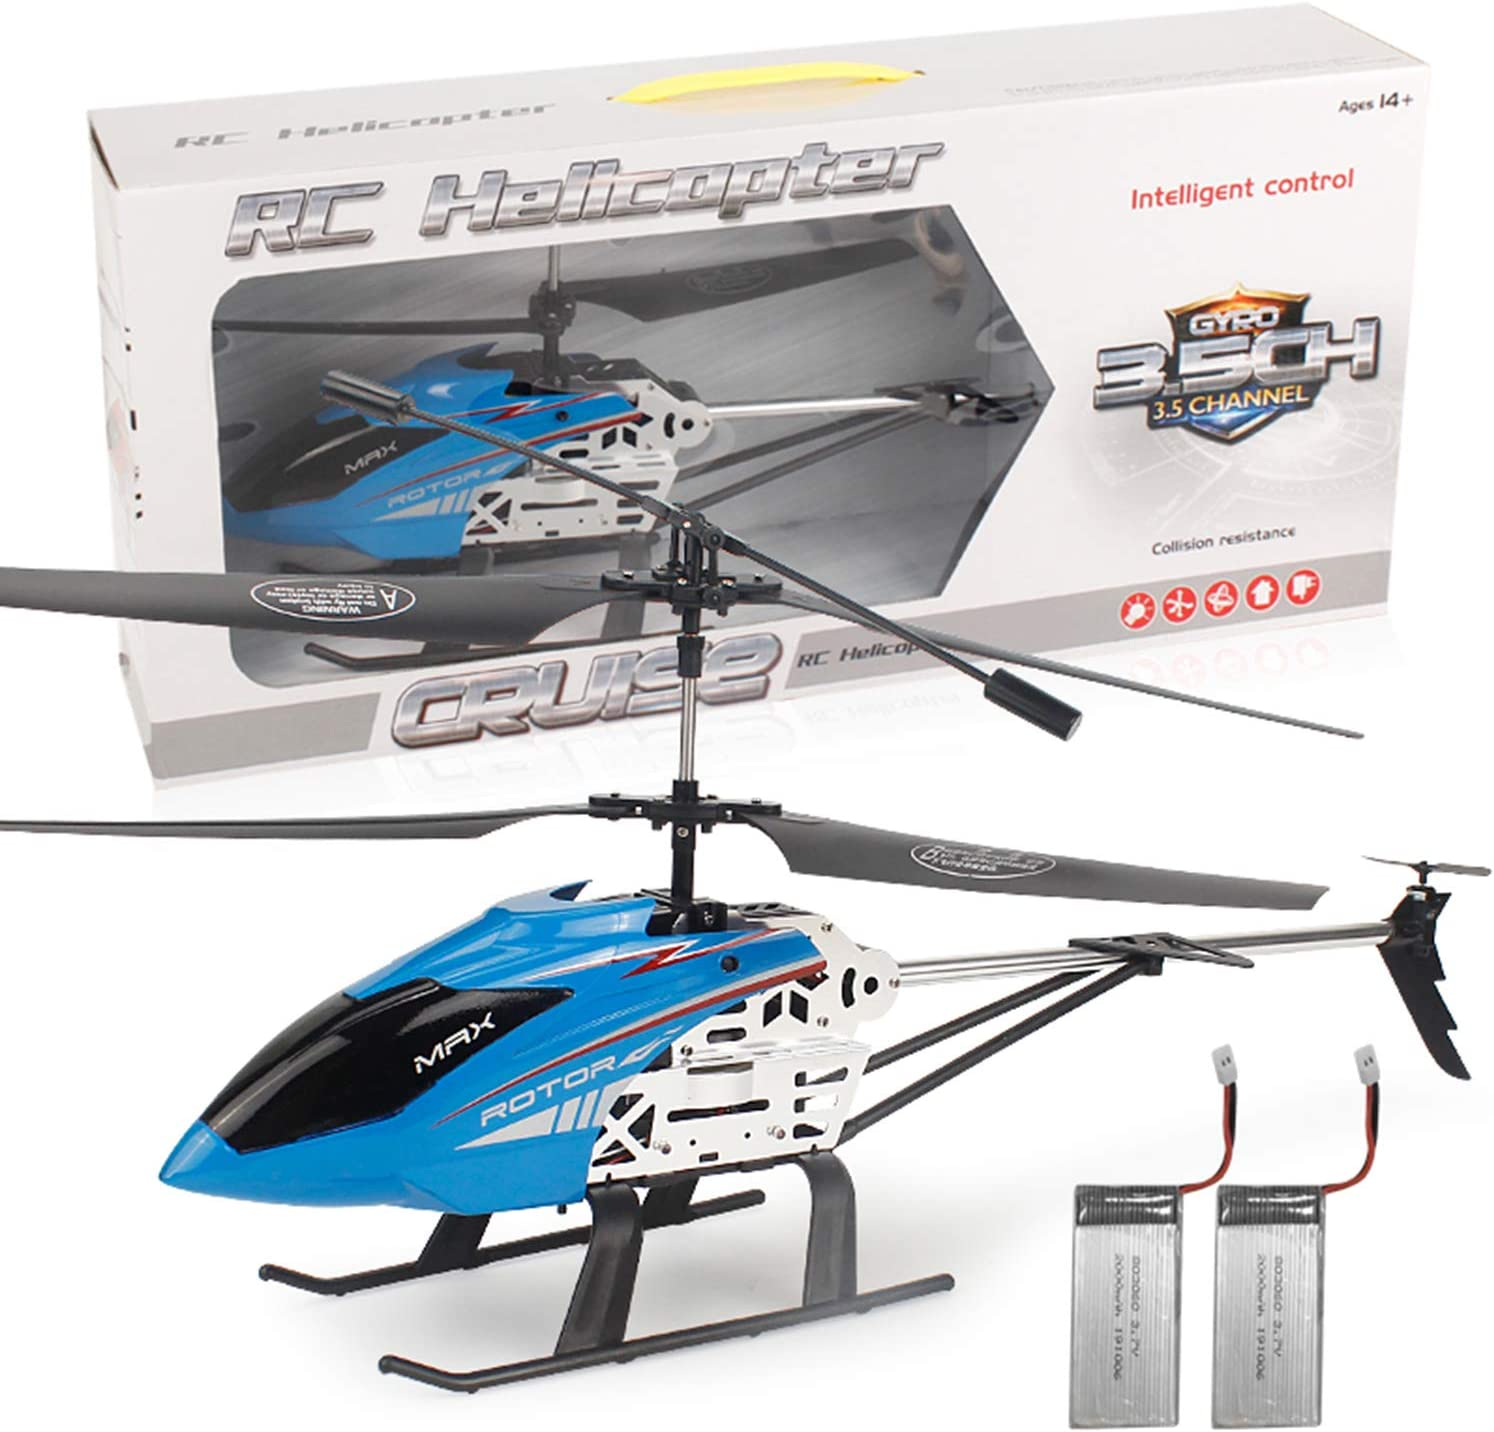 GLORY168 20Inch Large Aircraft Remote Control Helicopter with 3.5GHZ Channel Alloy Gyro Stabilizer and Multi-Protection Drone RC Helicopter Toy-Red for Kids and Adults